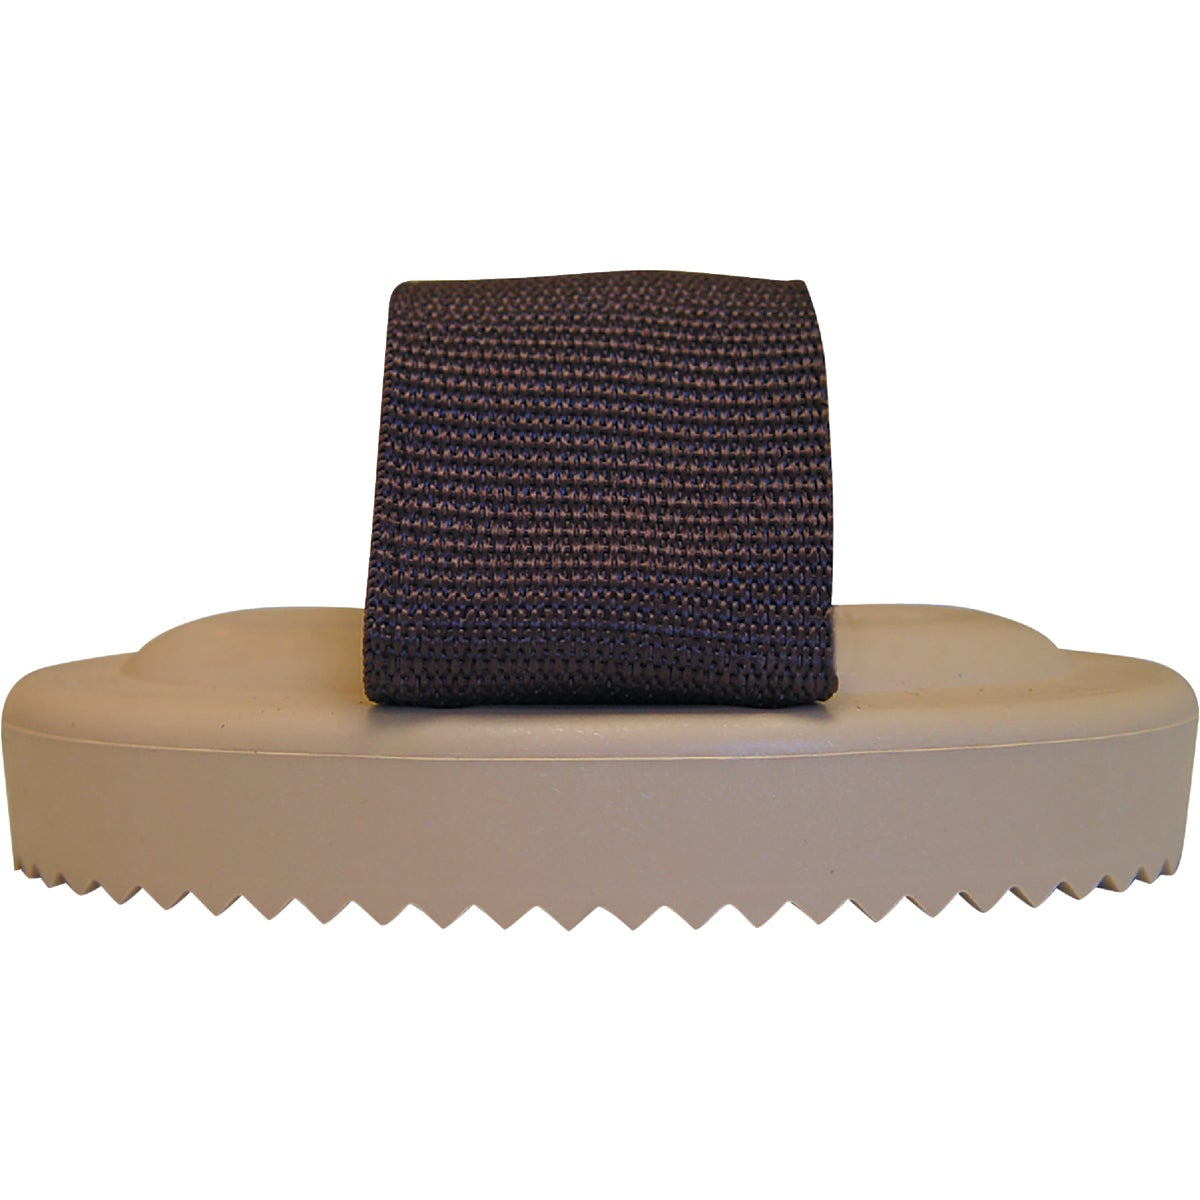 Item 752992, A durable comb with flexibility.